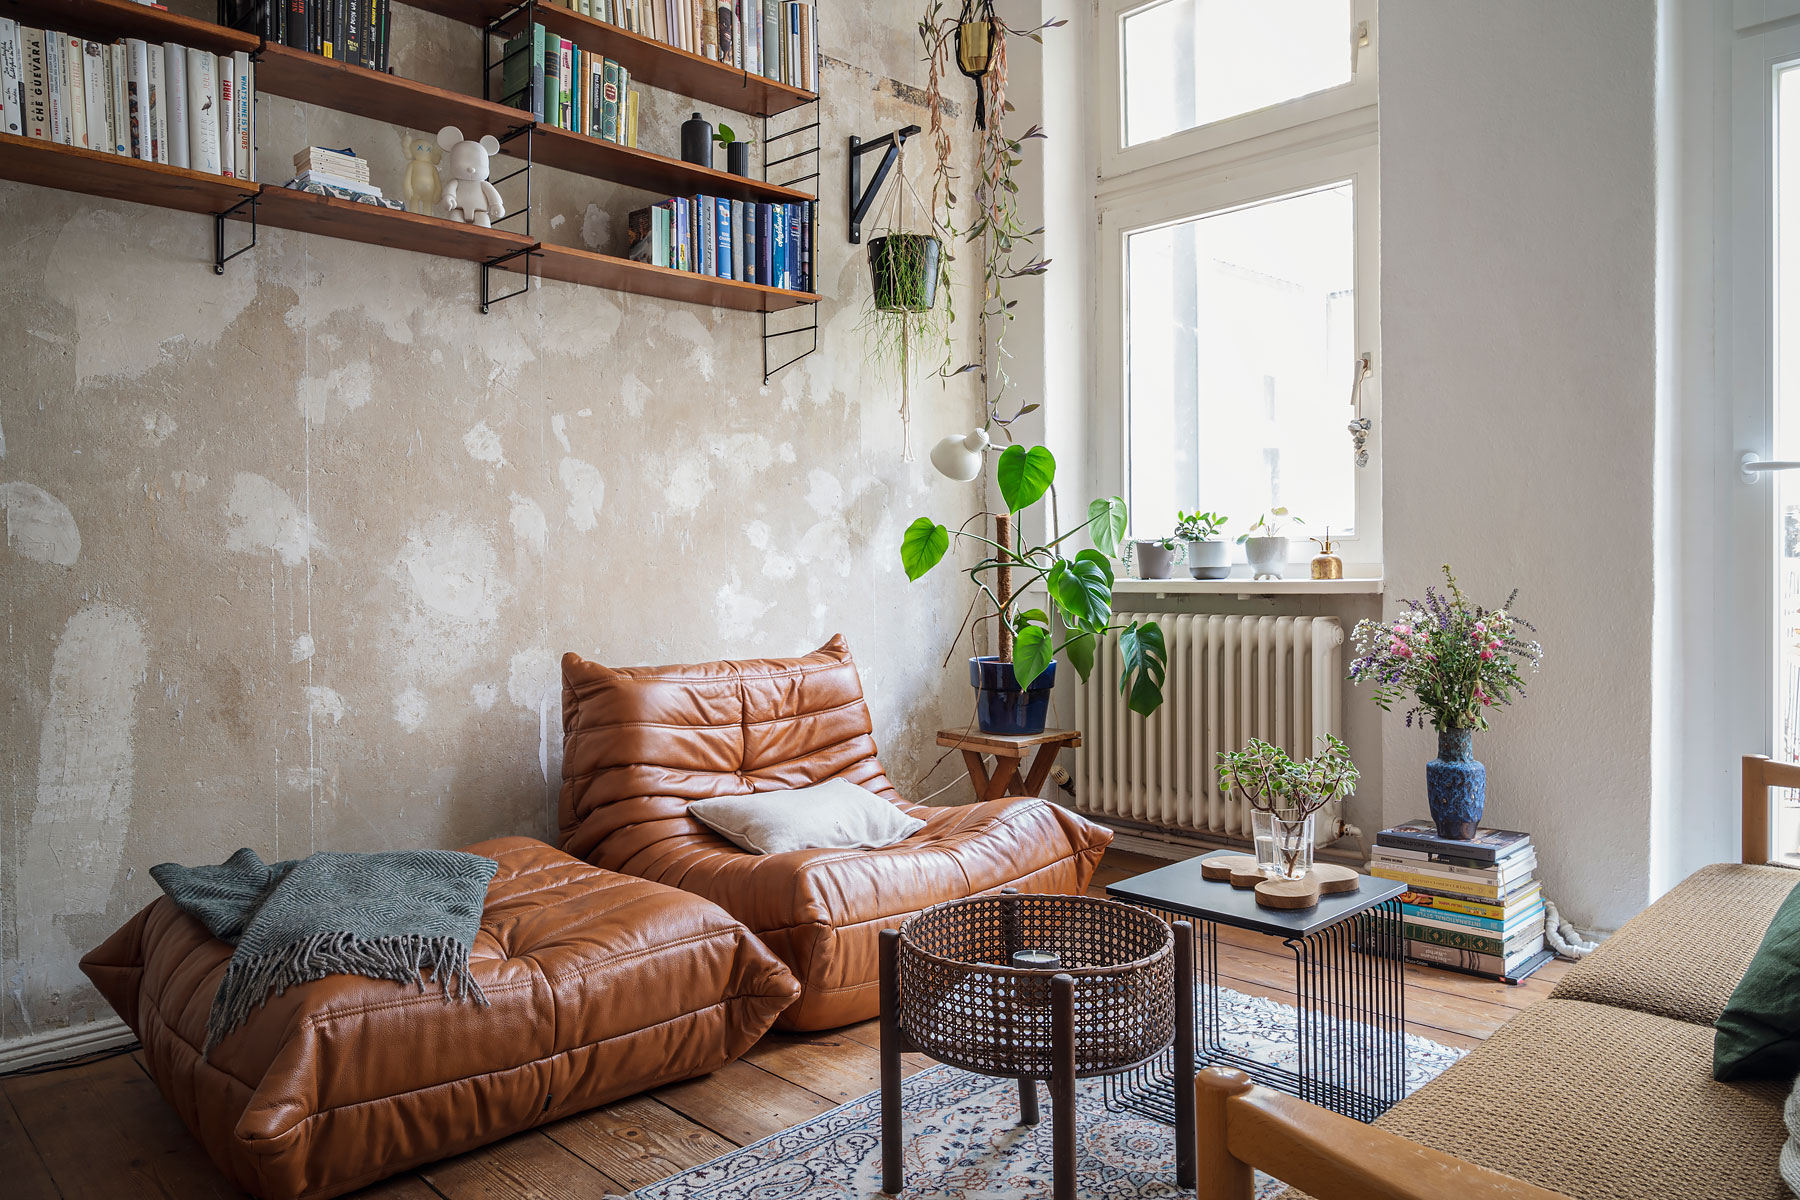 Beautiful apartment of Berlin based interior designer